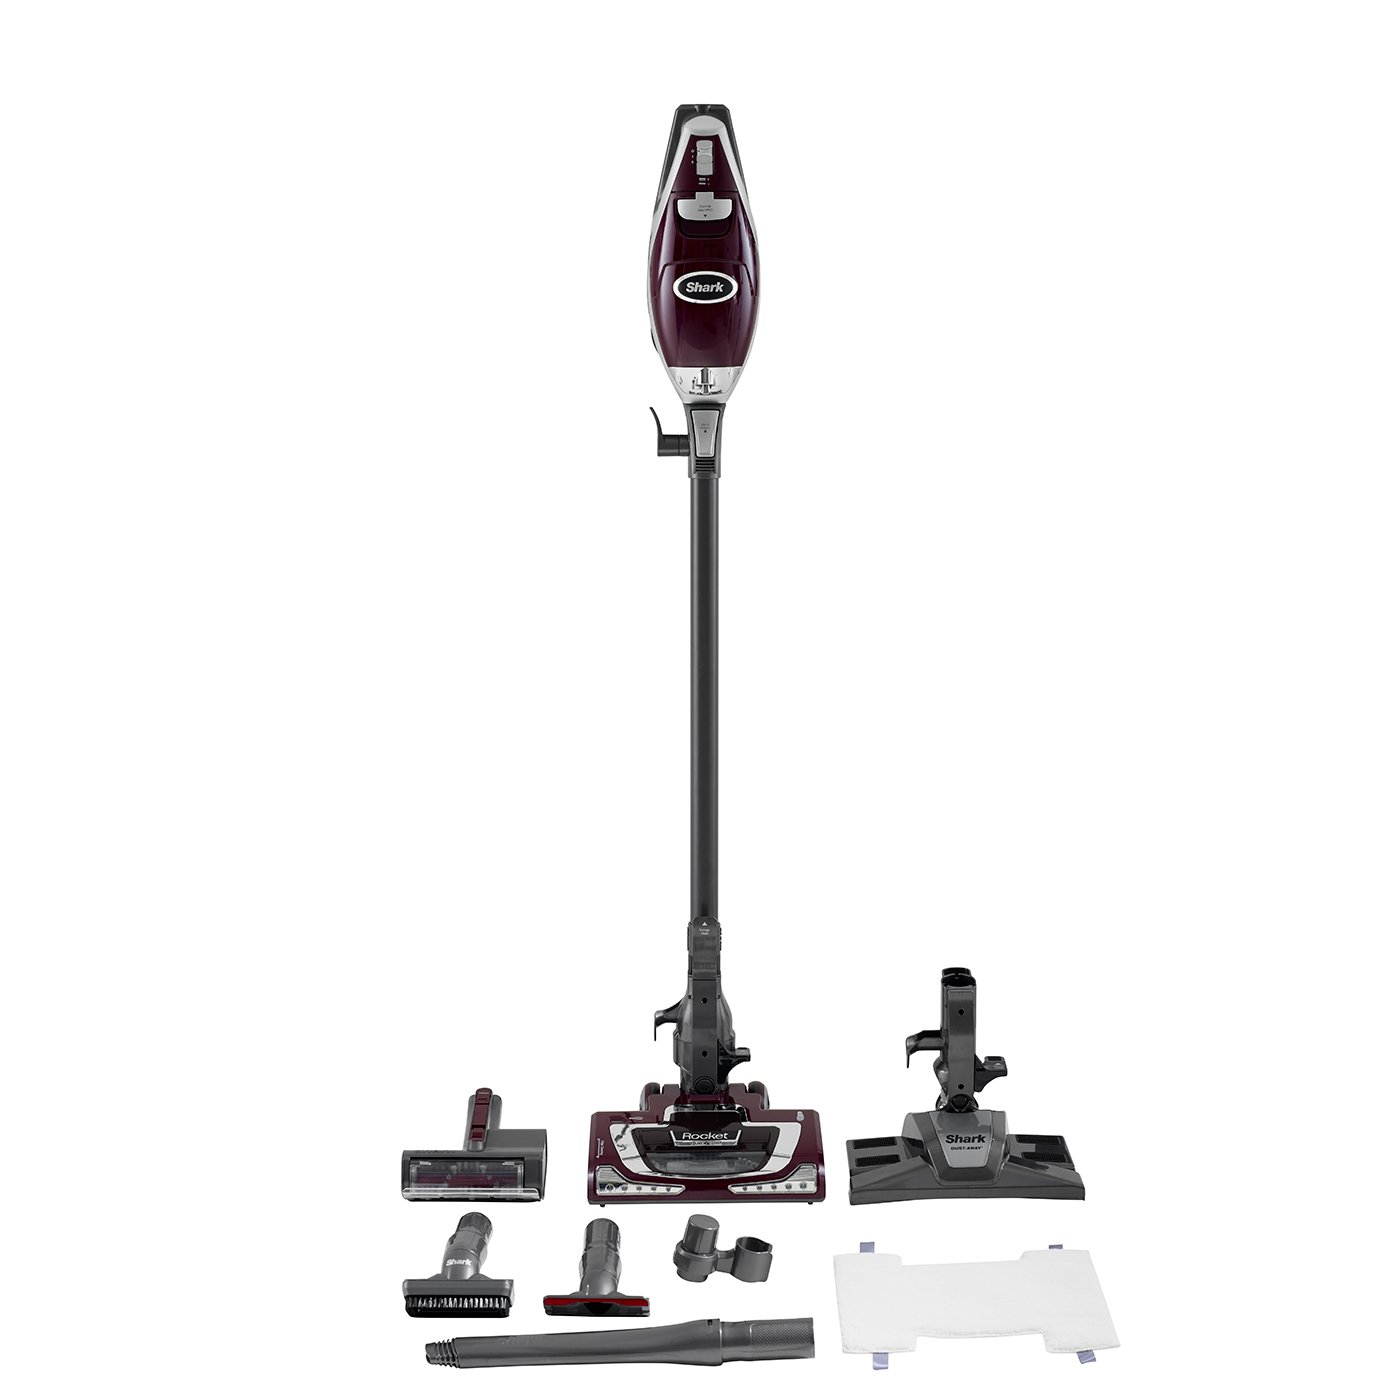 rocket upright pro deluxe ultra qvc vacuum of page shark luxury lighting light